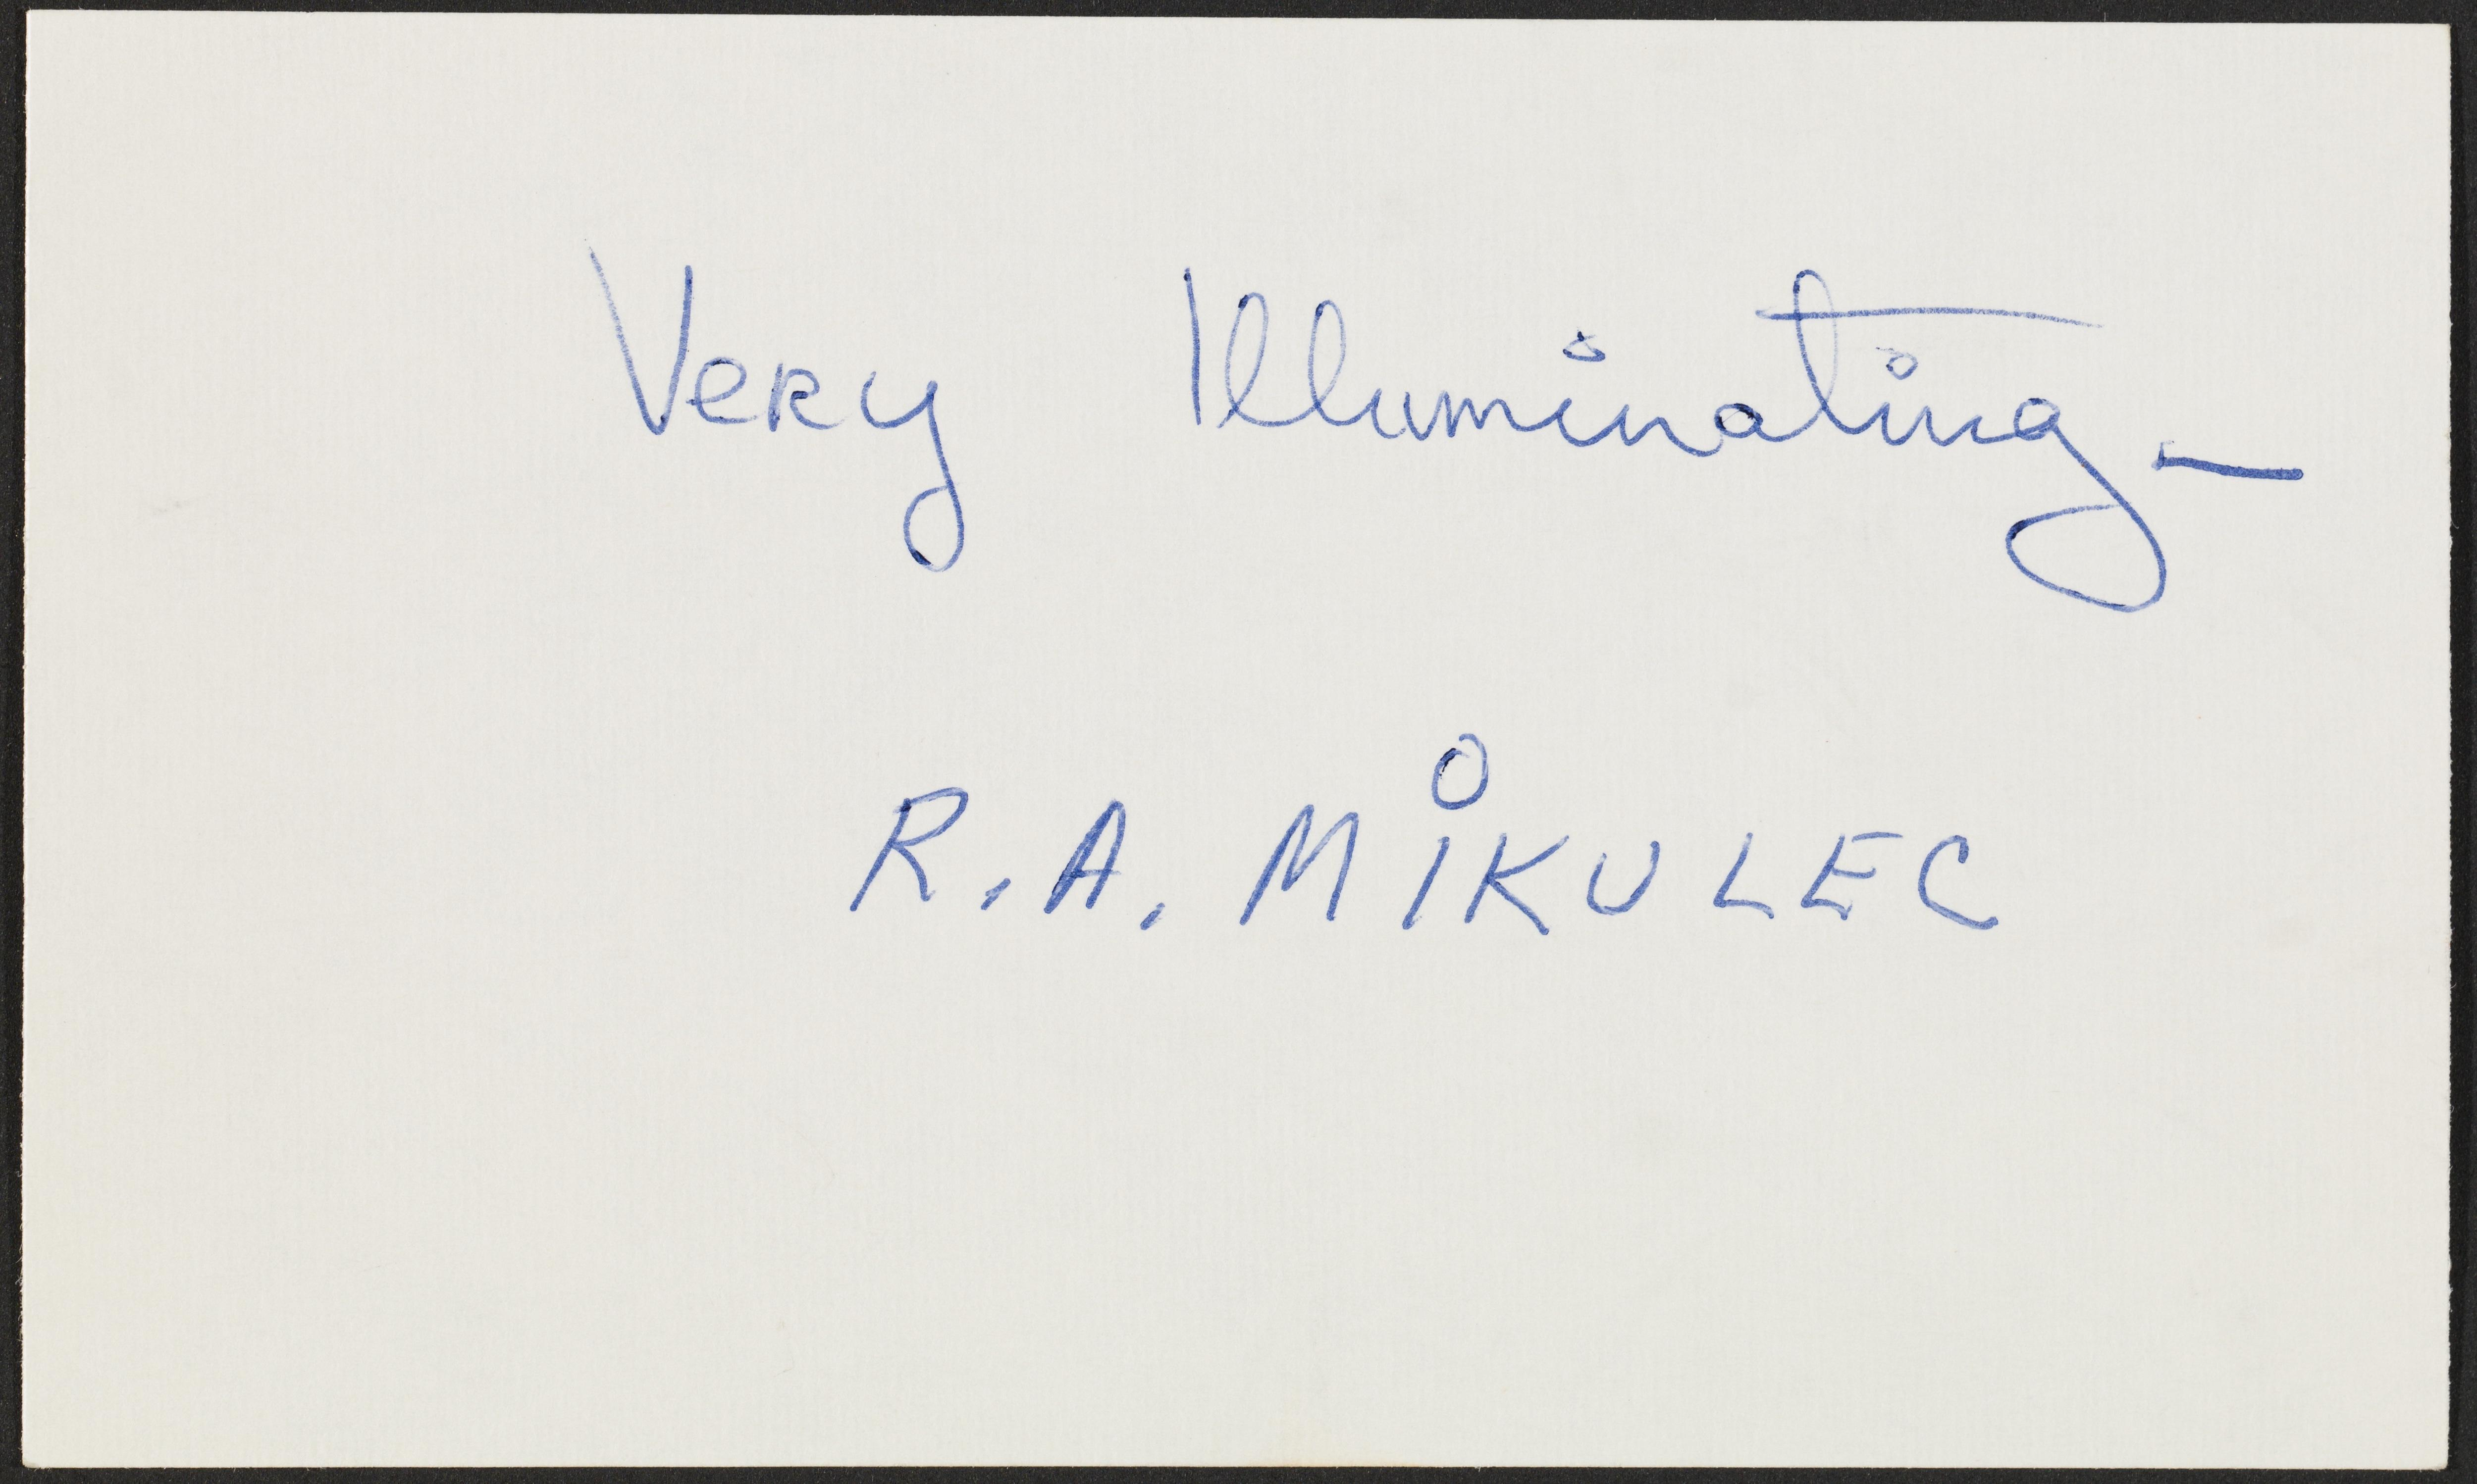 """An index card with handwritten text reads """"Very illuminating— R.A. Mikulec."""""""